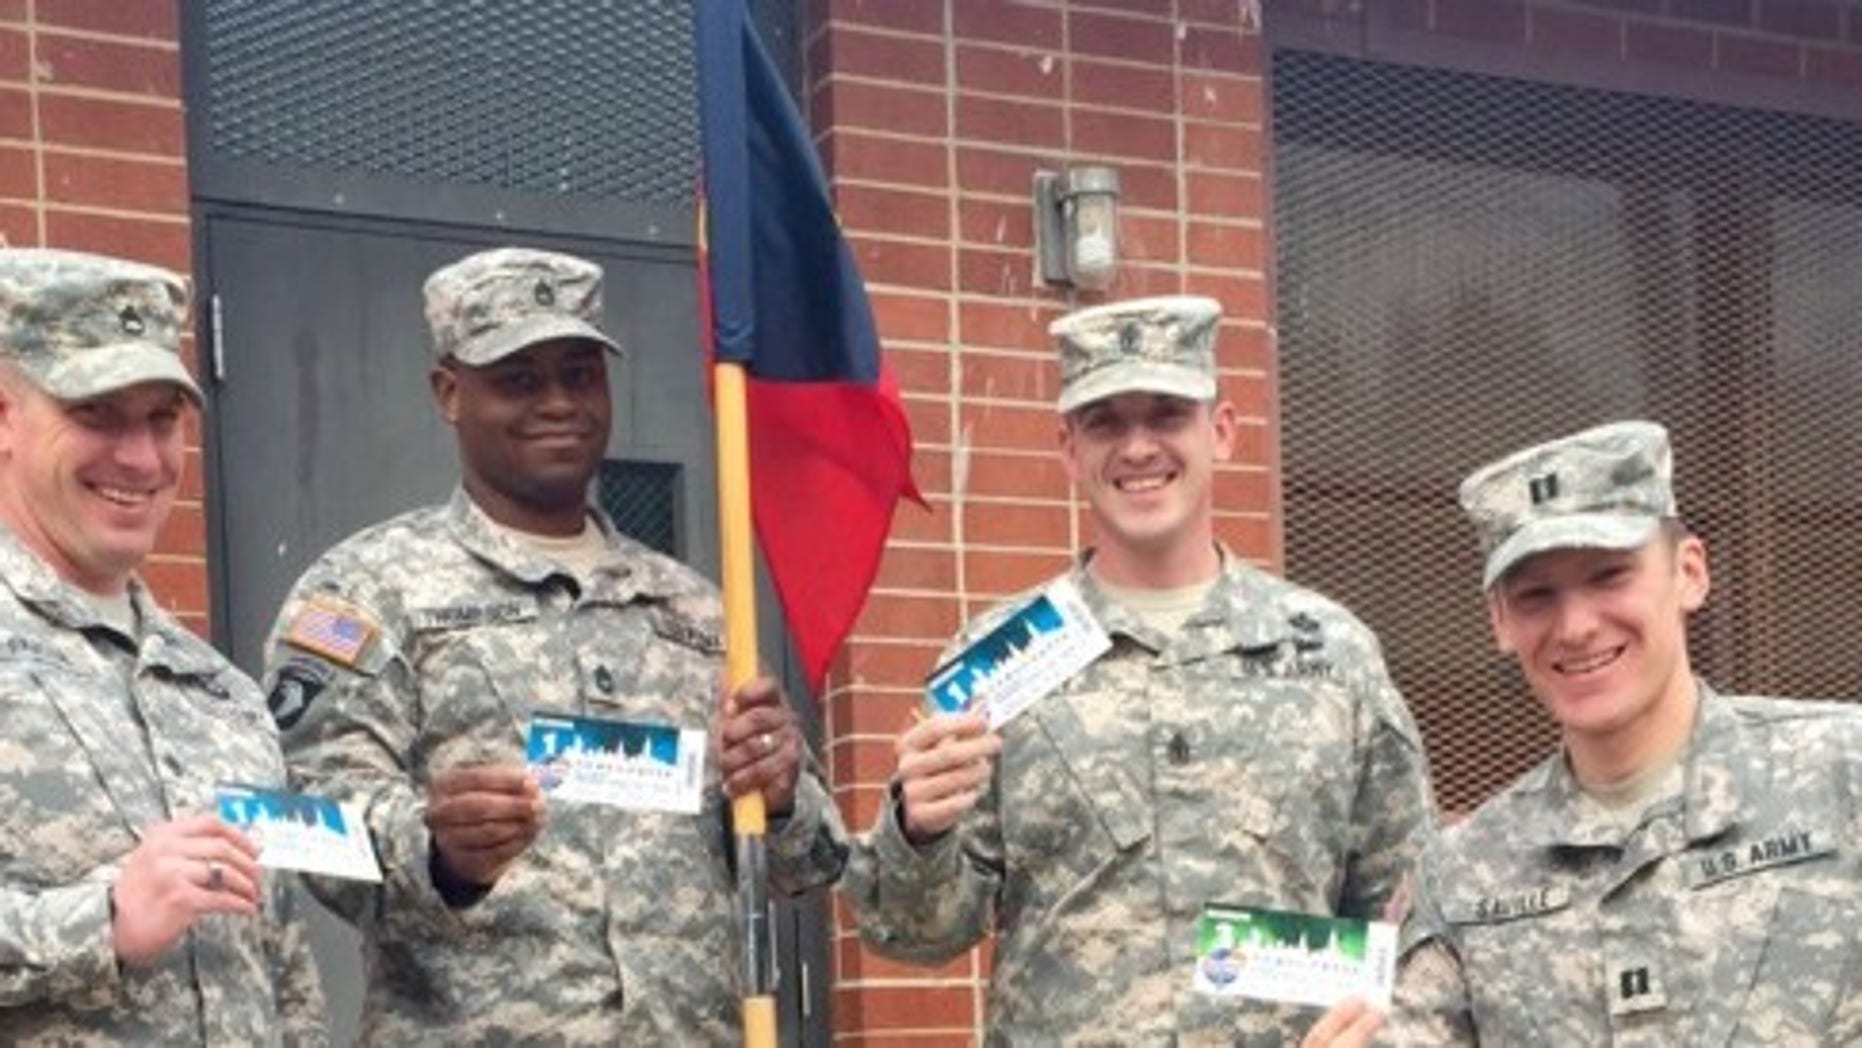 G.I. Tickets Foundation is sending troops to sporting events as a thank you for their service.